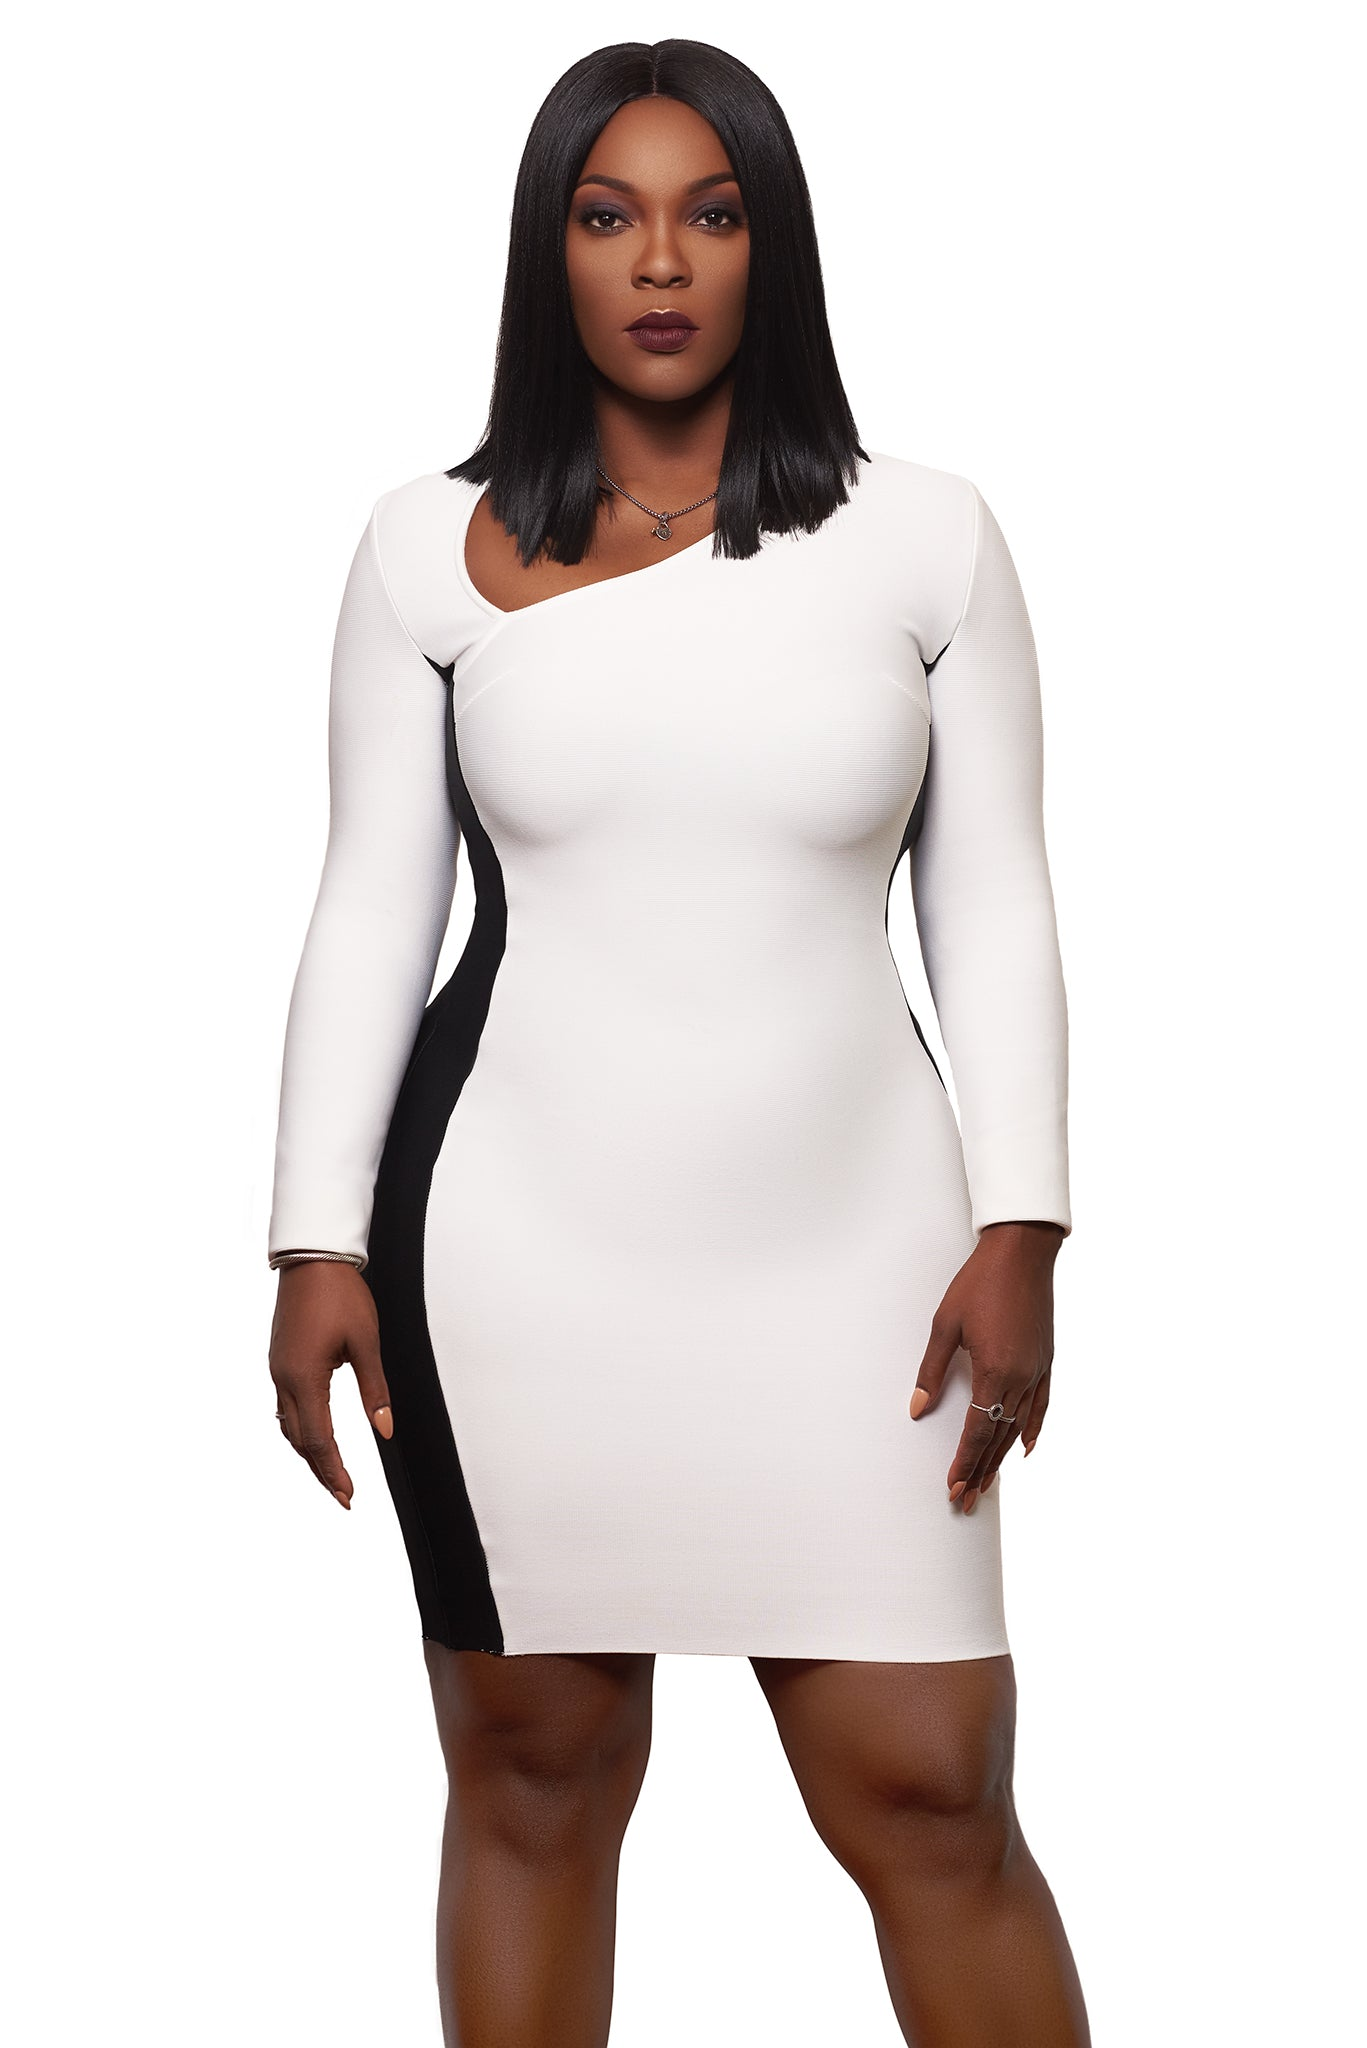 The Briland Bandage Dress